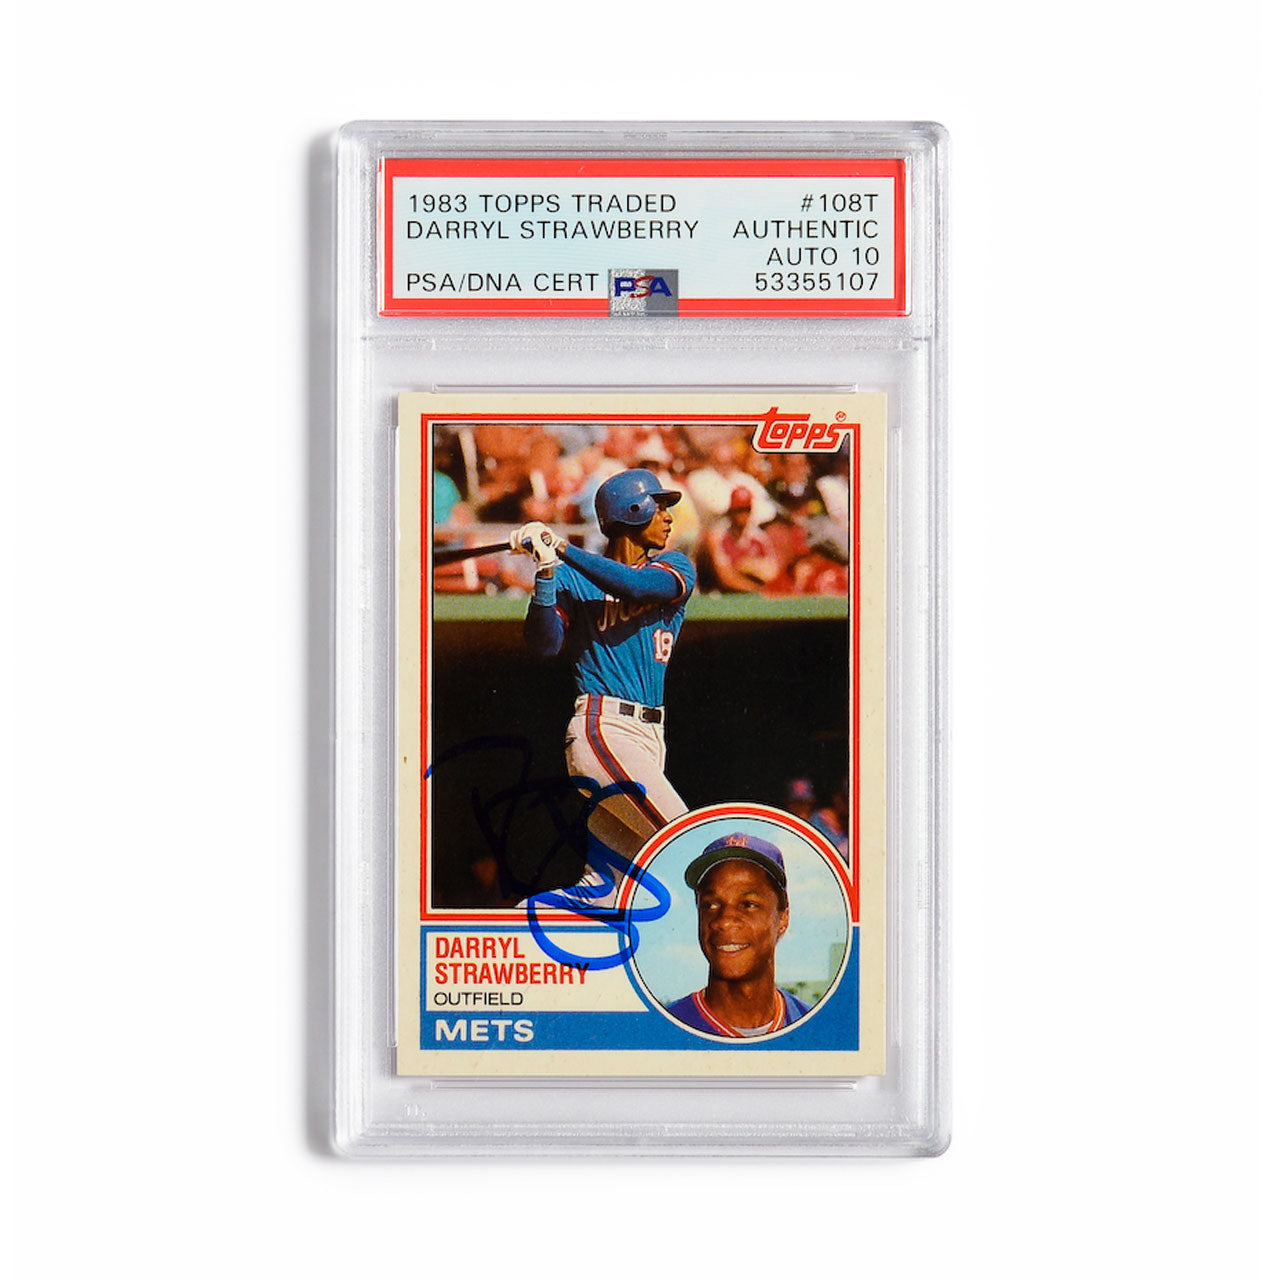 1983 Topps Traded Darryl Strawberry Autographed Rookie Card